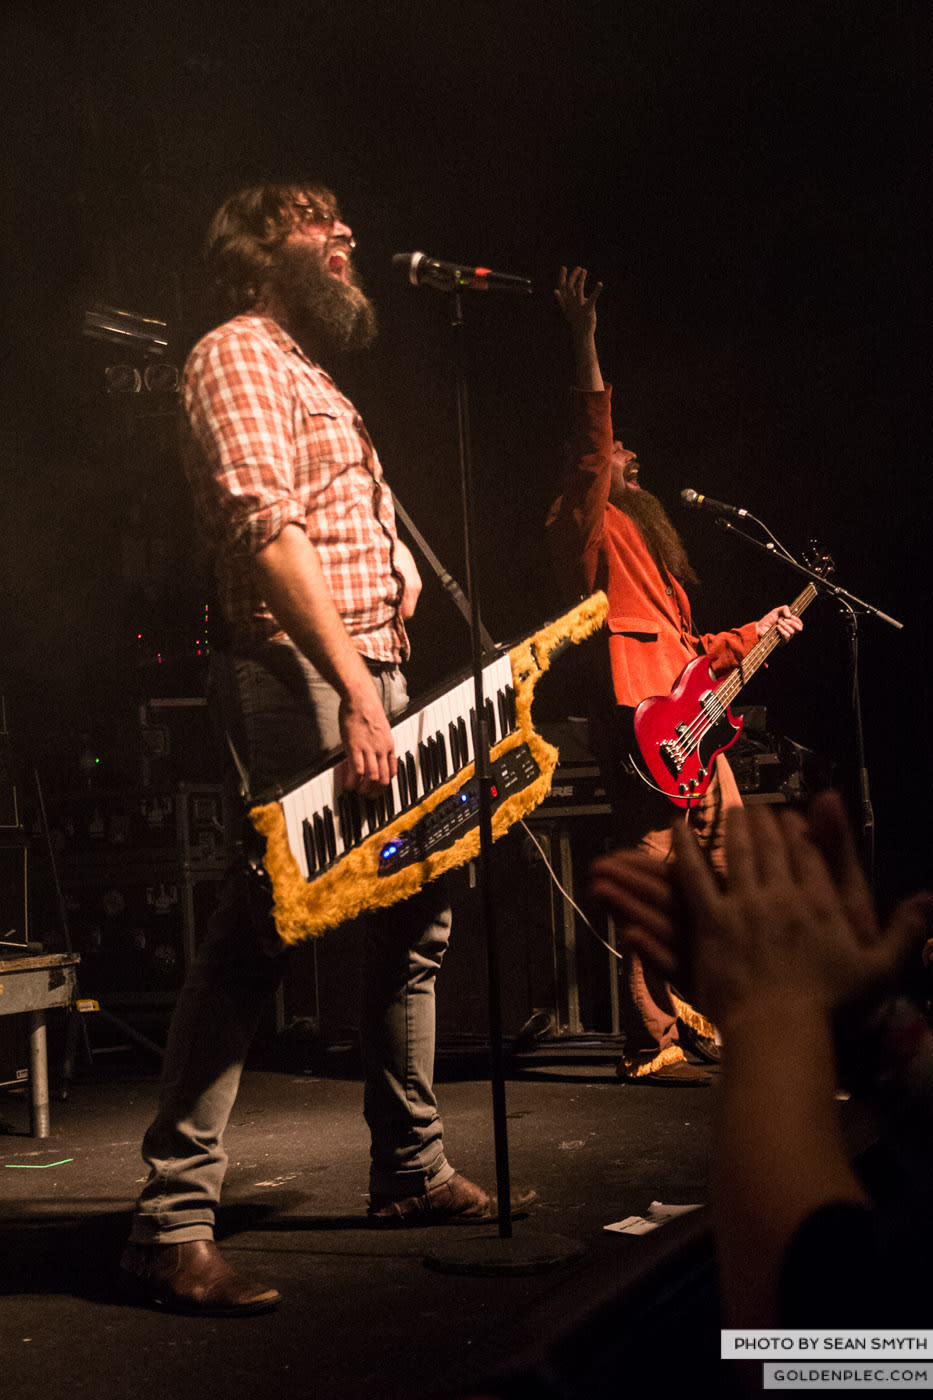 the-beards-at-button-factory-by-sean-smyth-10-12-14-15-of-49